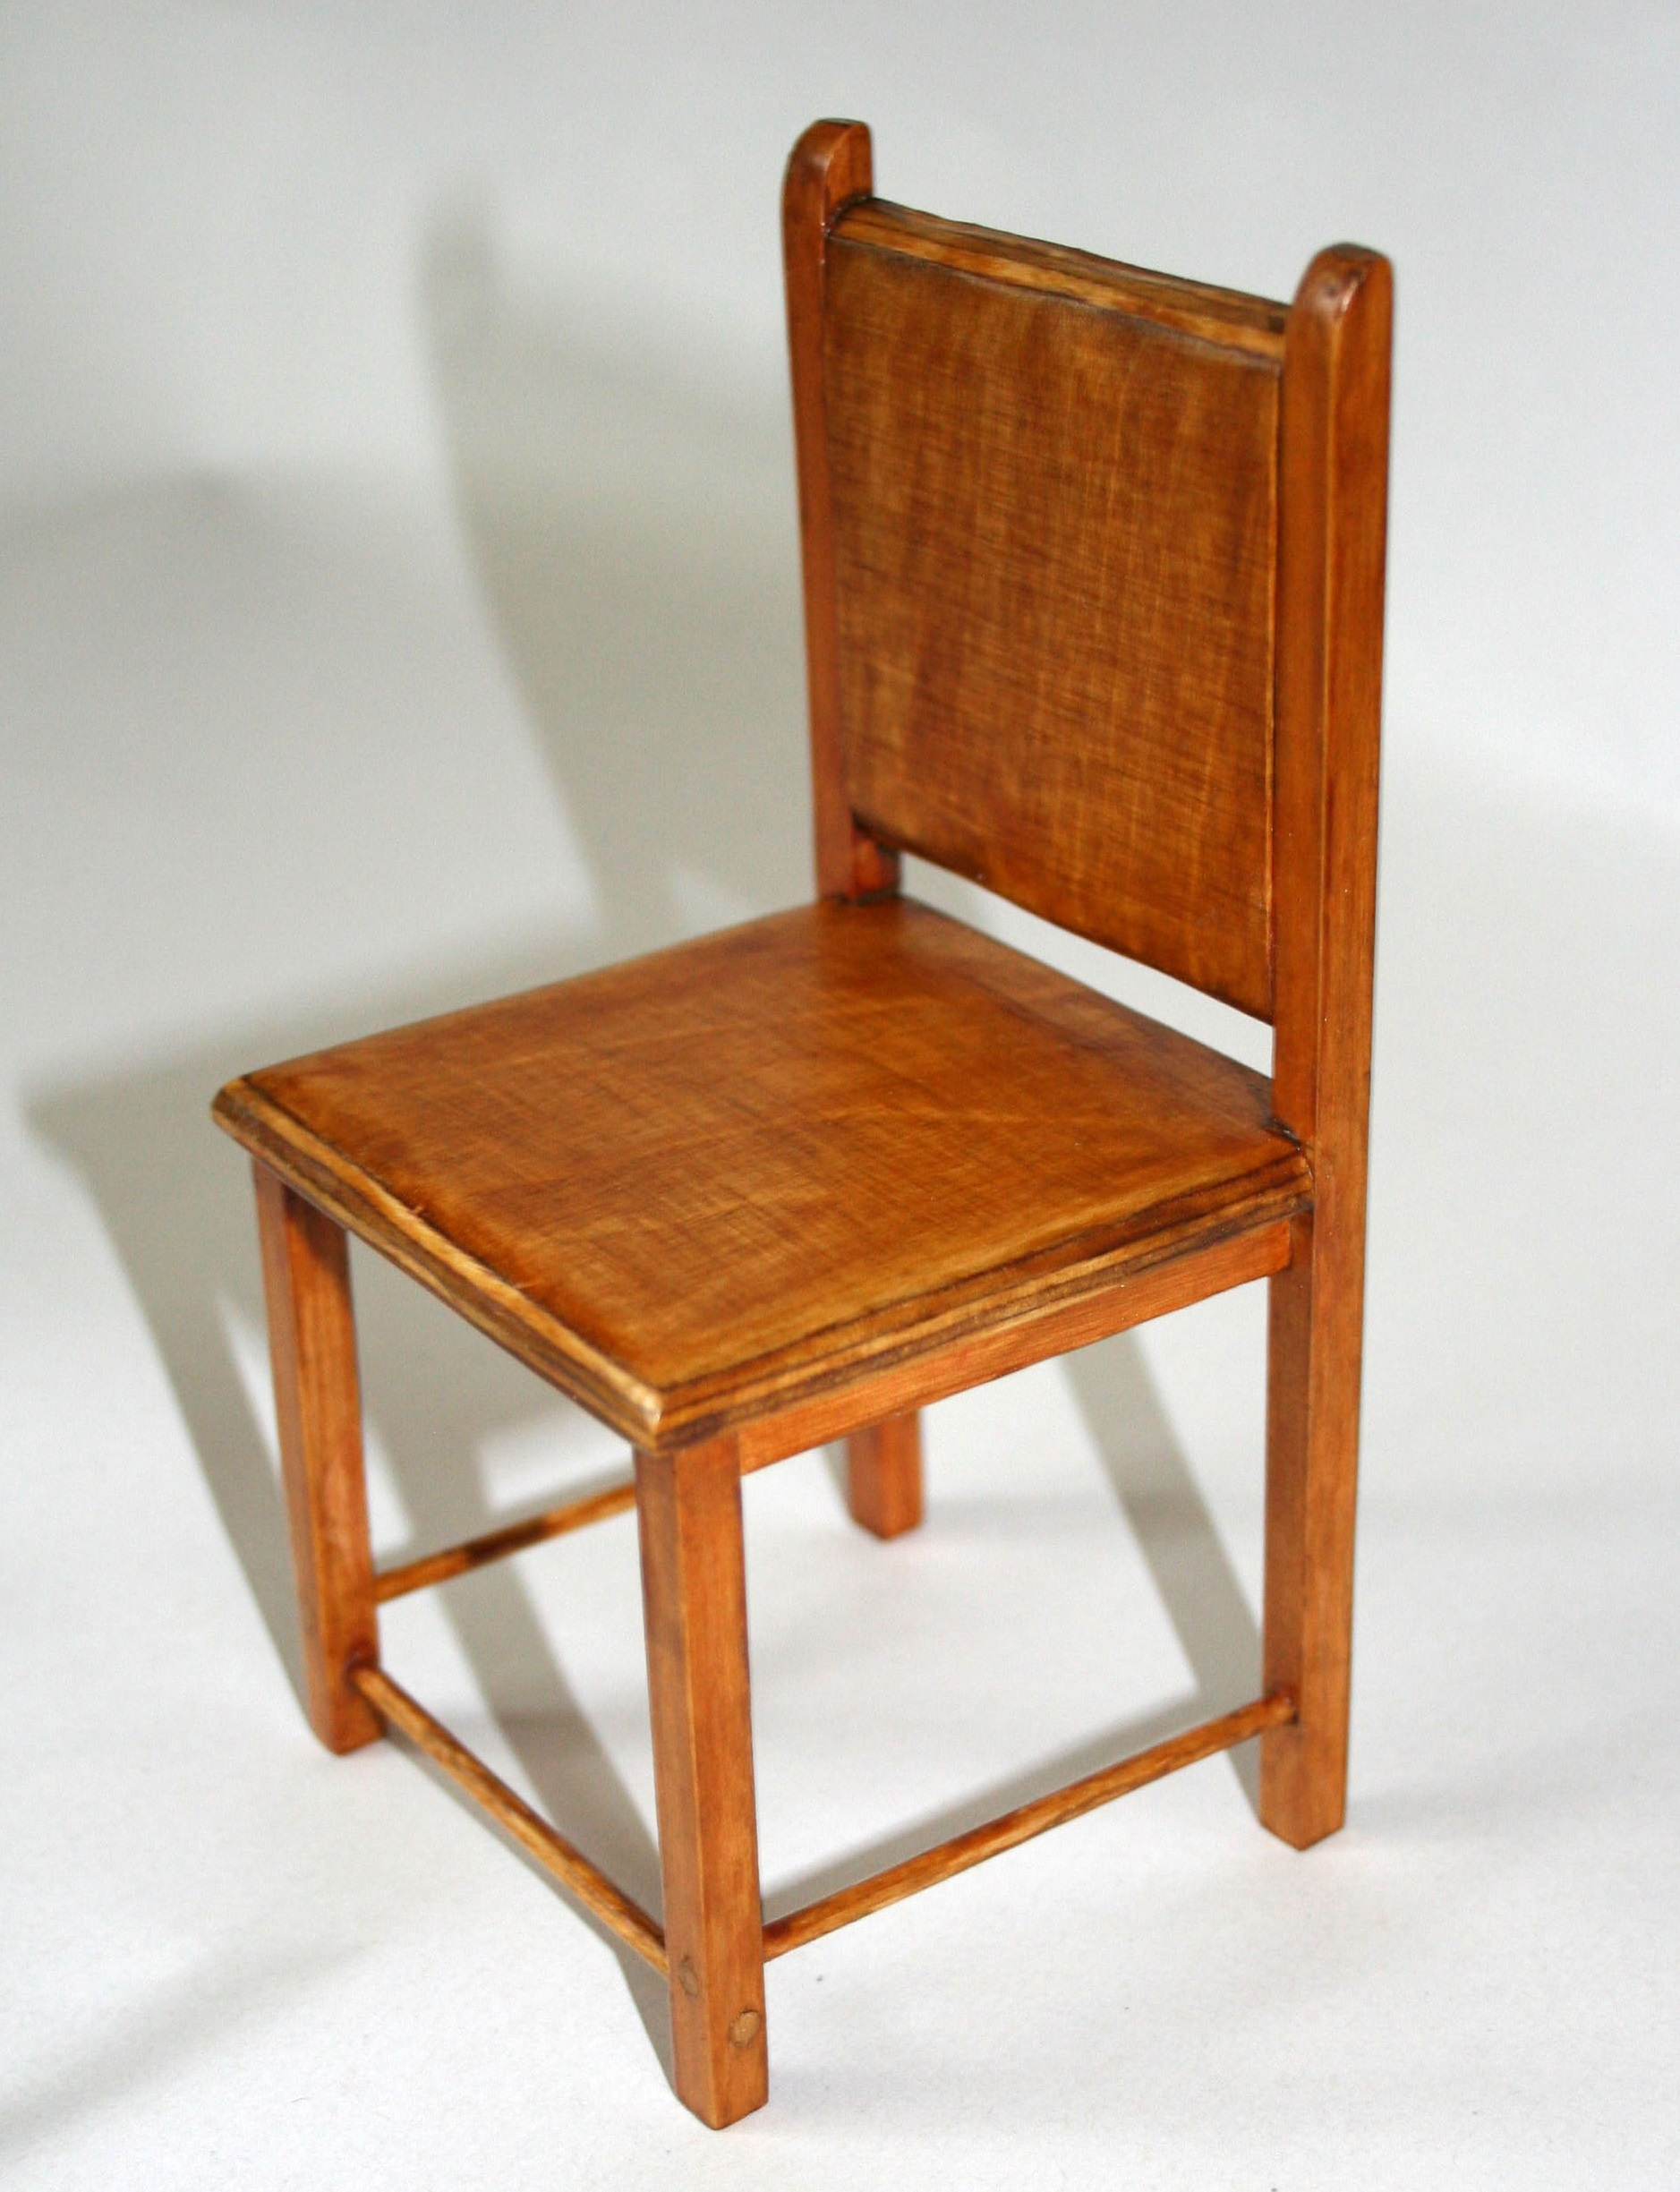 Image of chair model to represent fallen soldier from the First World War.